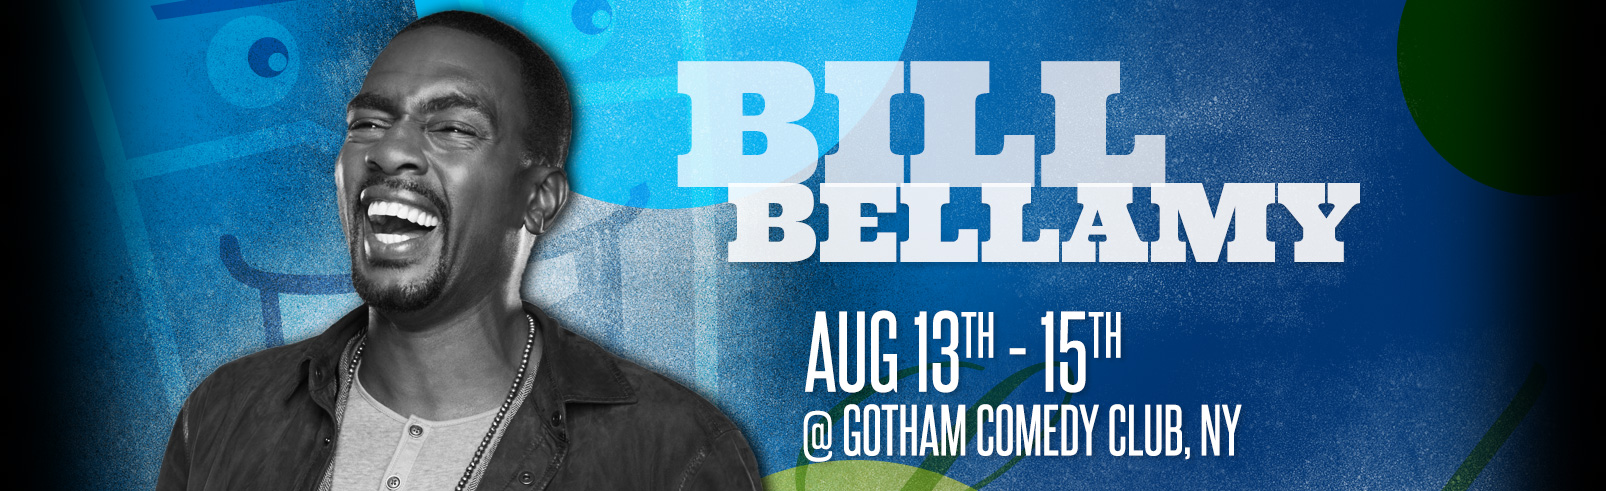 Bill Bellamy @ Gotham Comedy Club